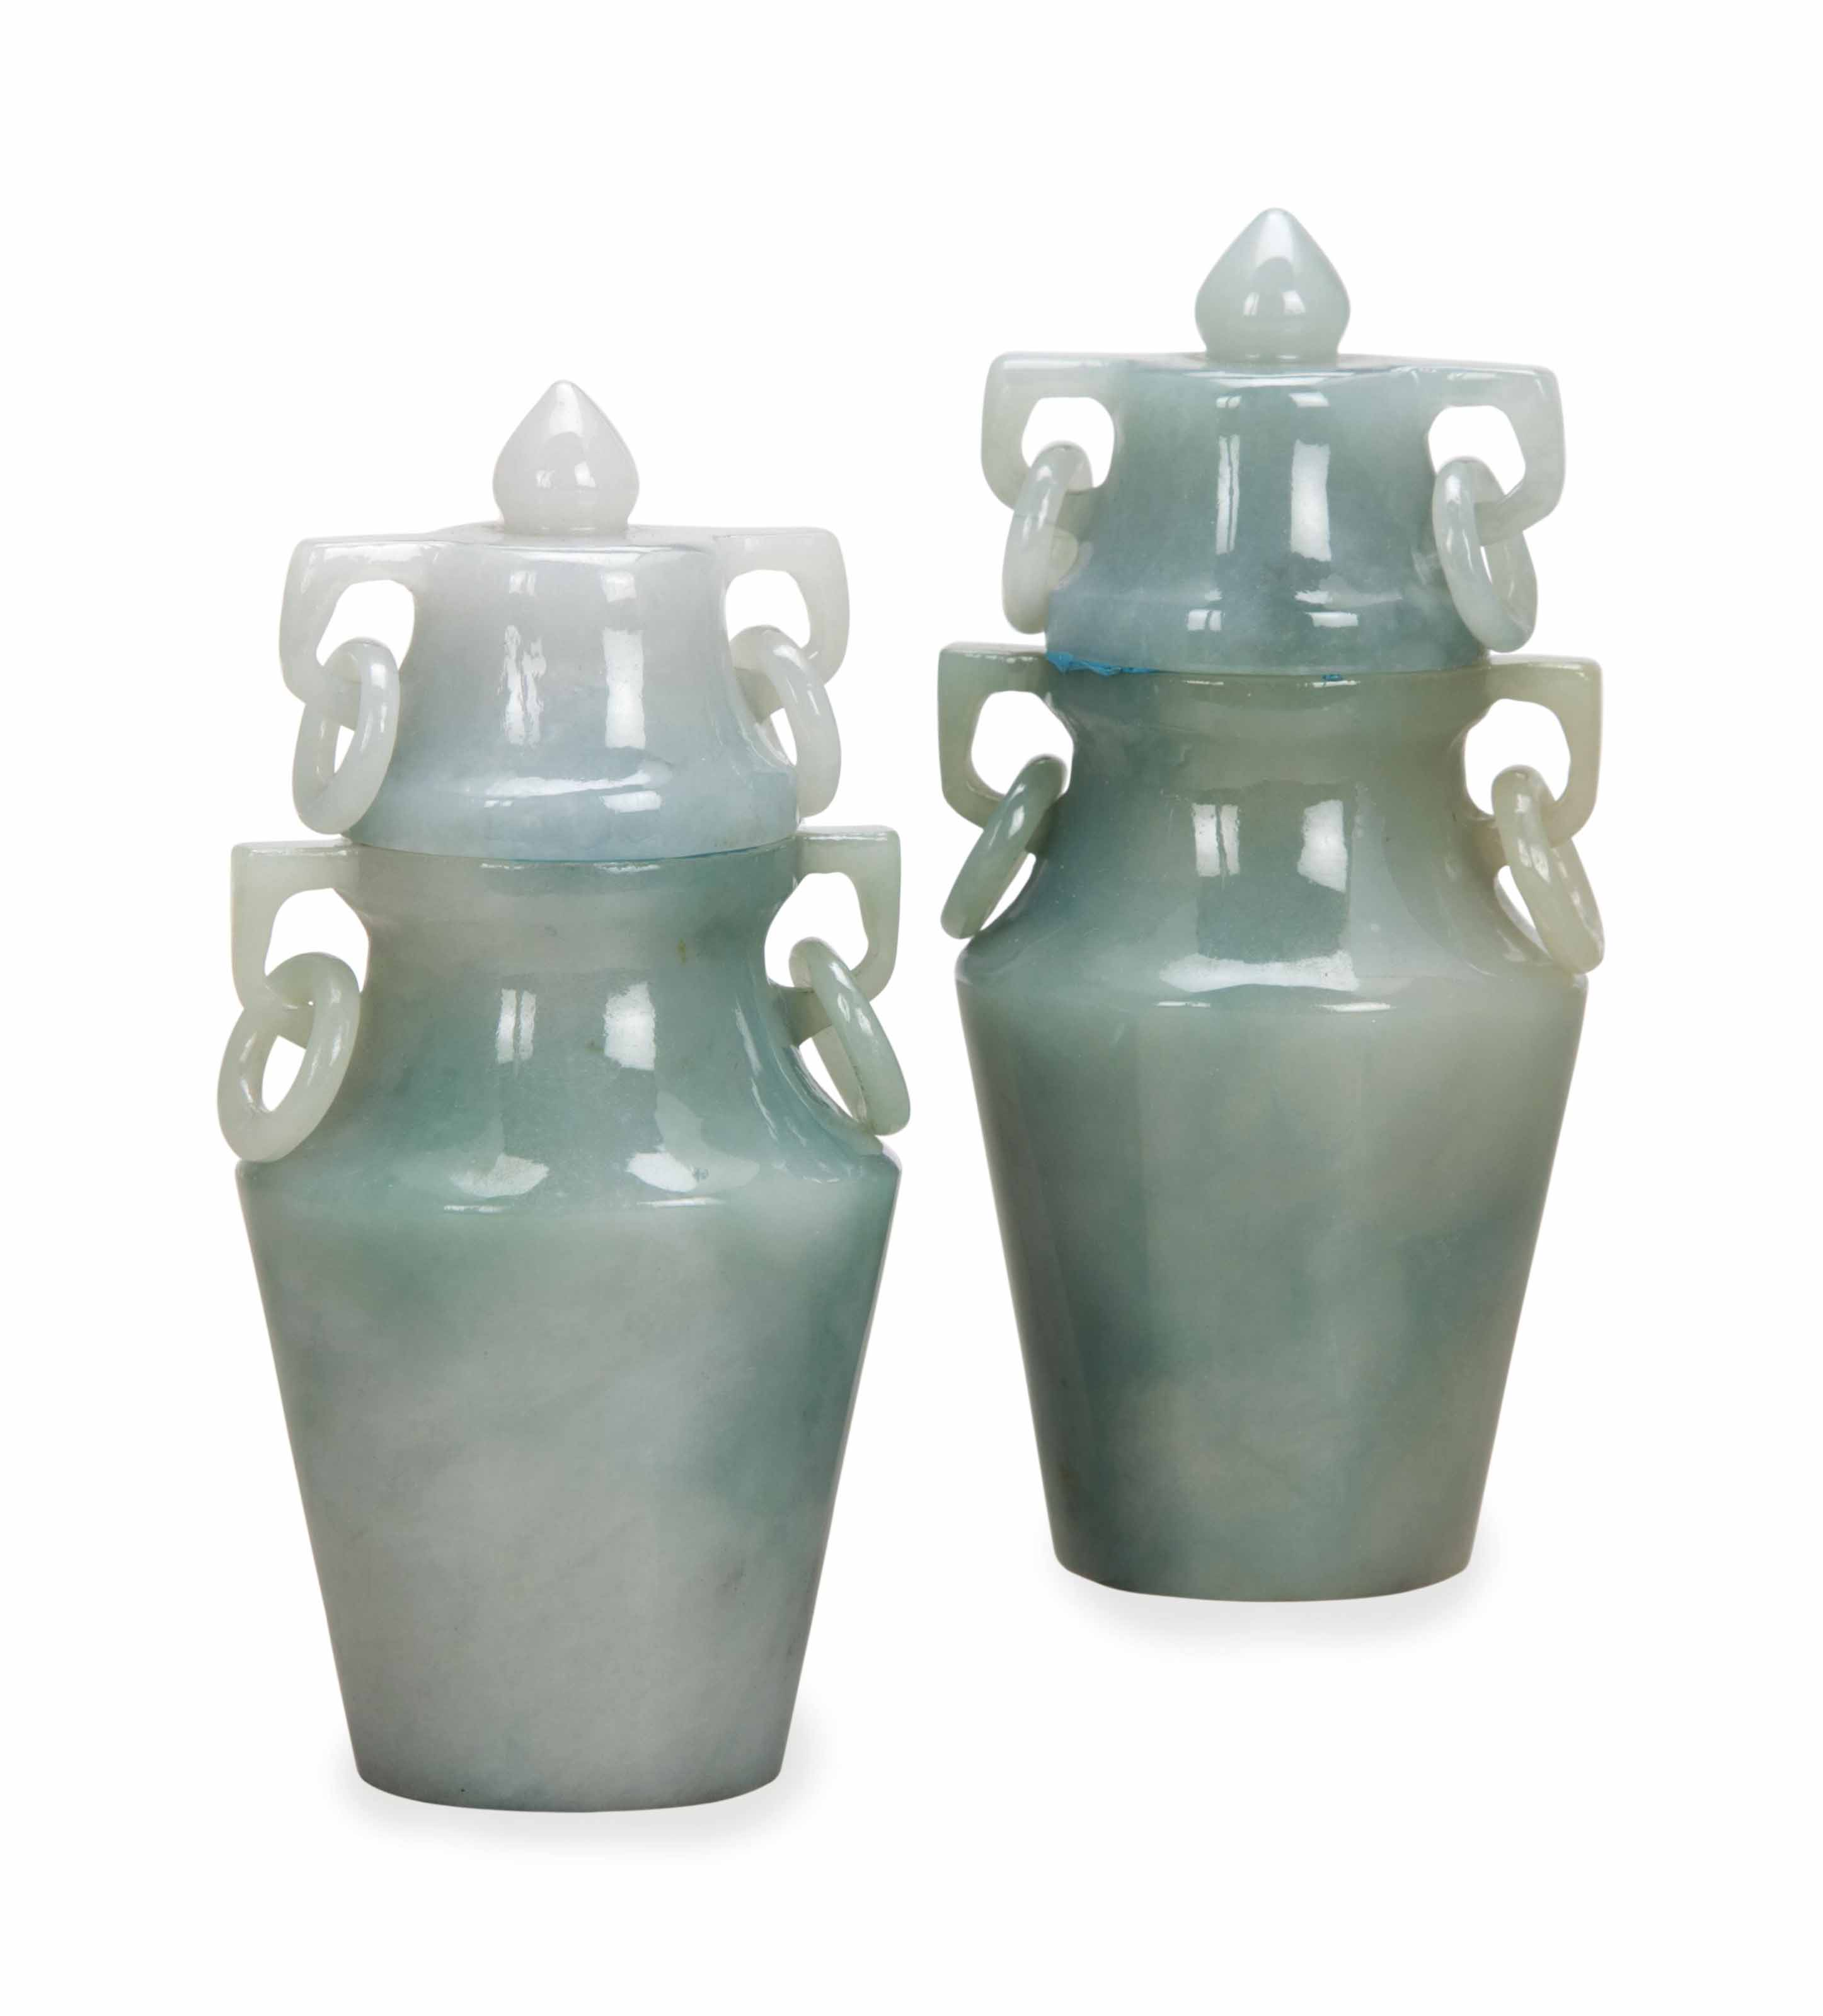 A PAIR OF CHINESE SMALL WHITISH-GREEN AND LAVENDER JADEITE VASES AND COVERS,